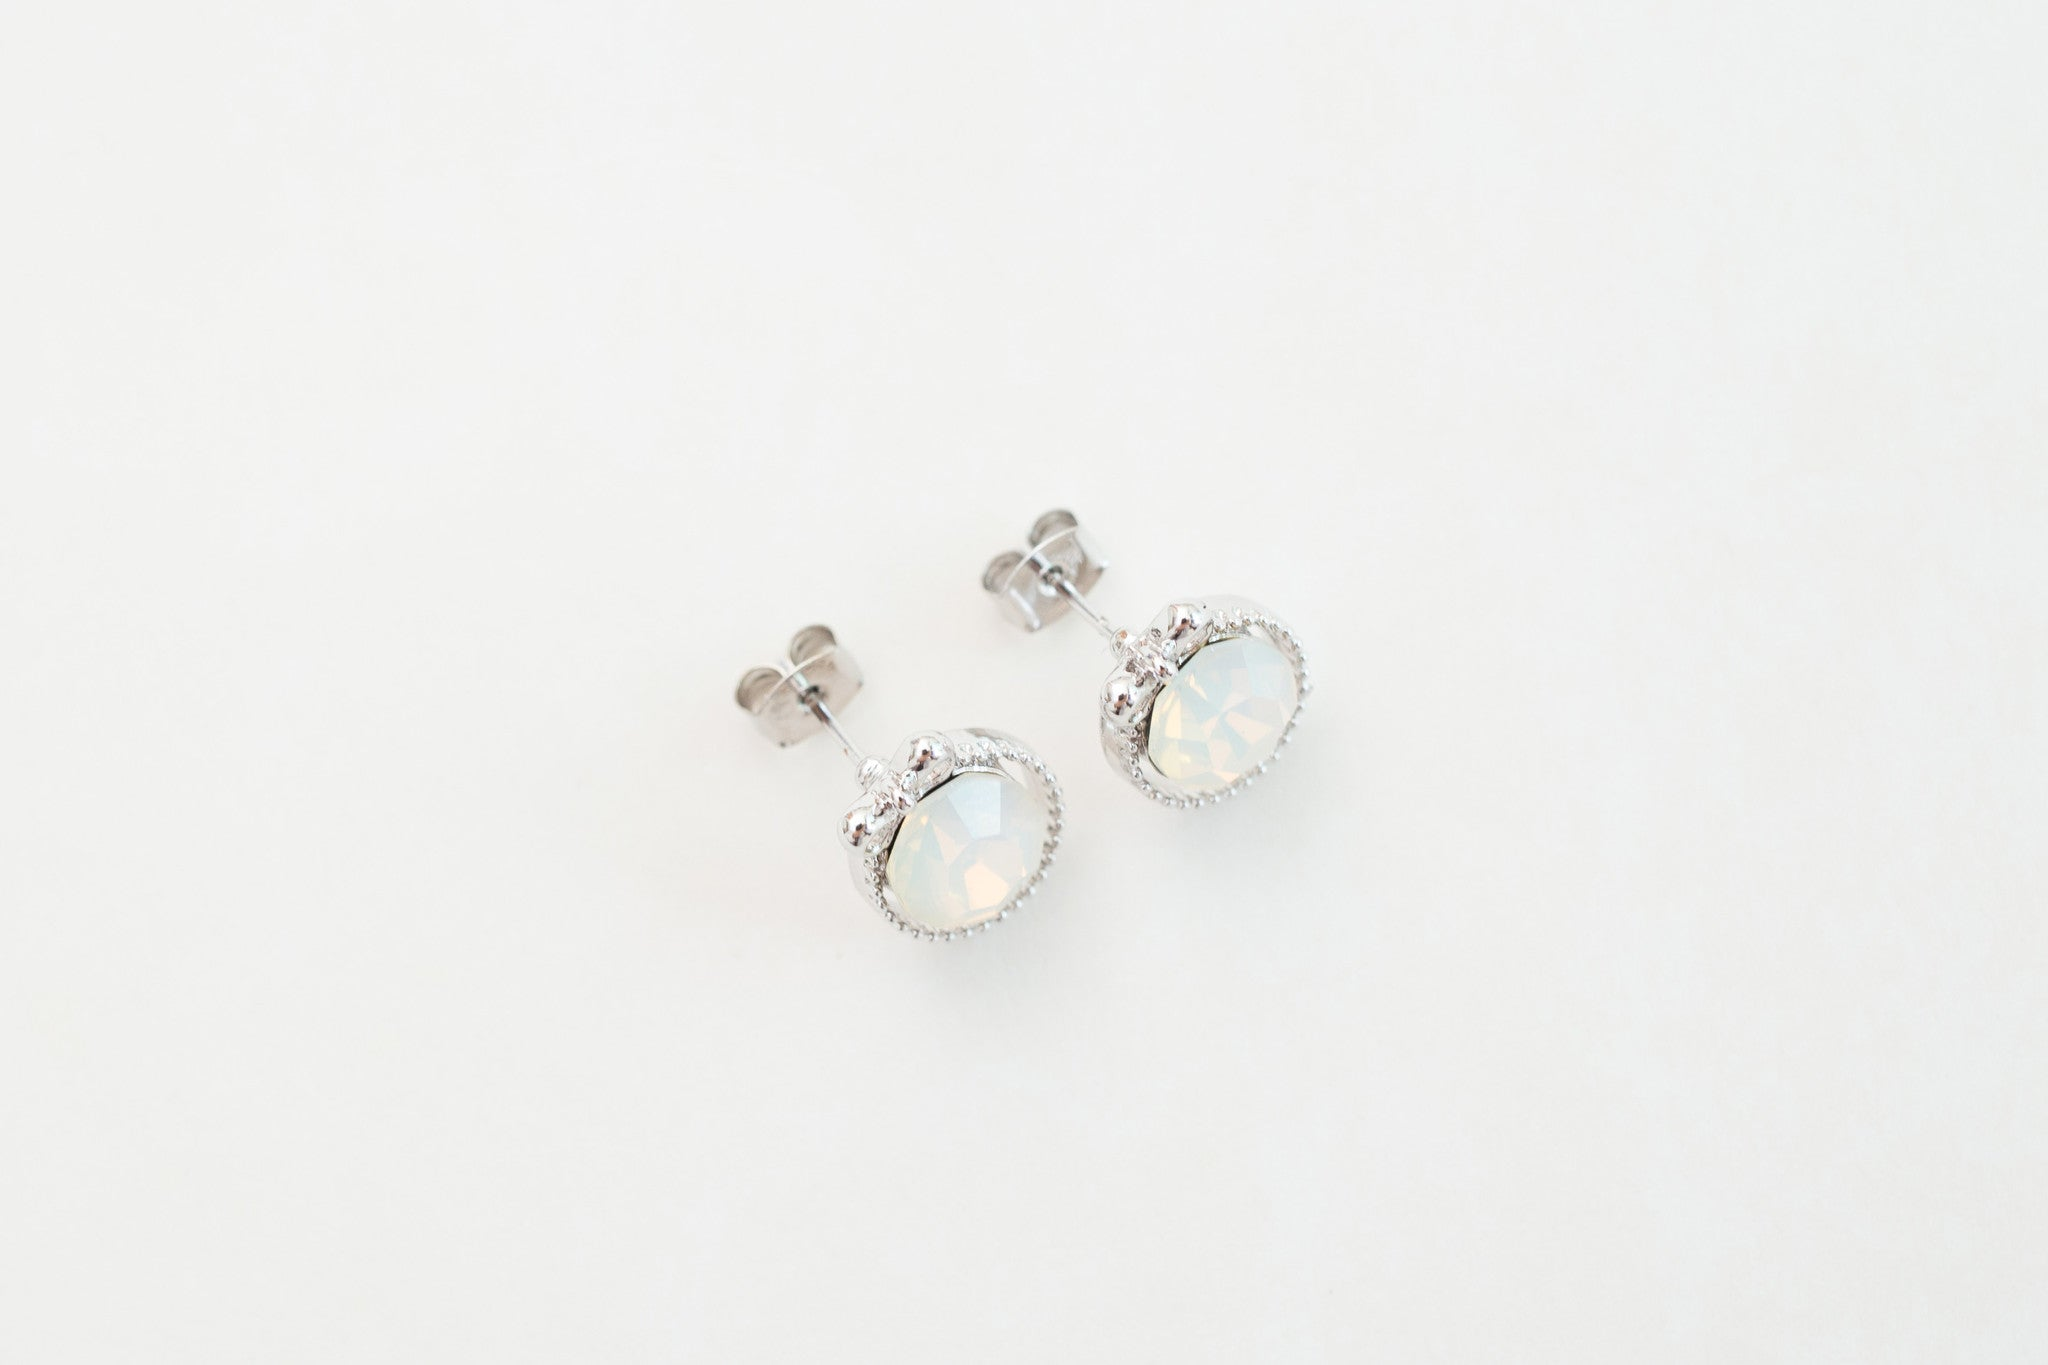 Ribbon & The Crystal Earrings / ER8094